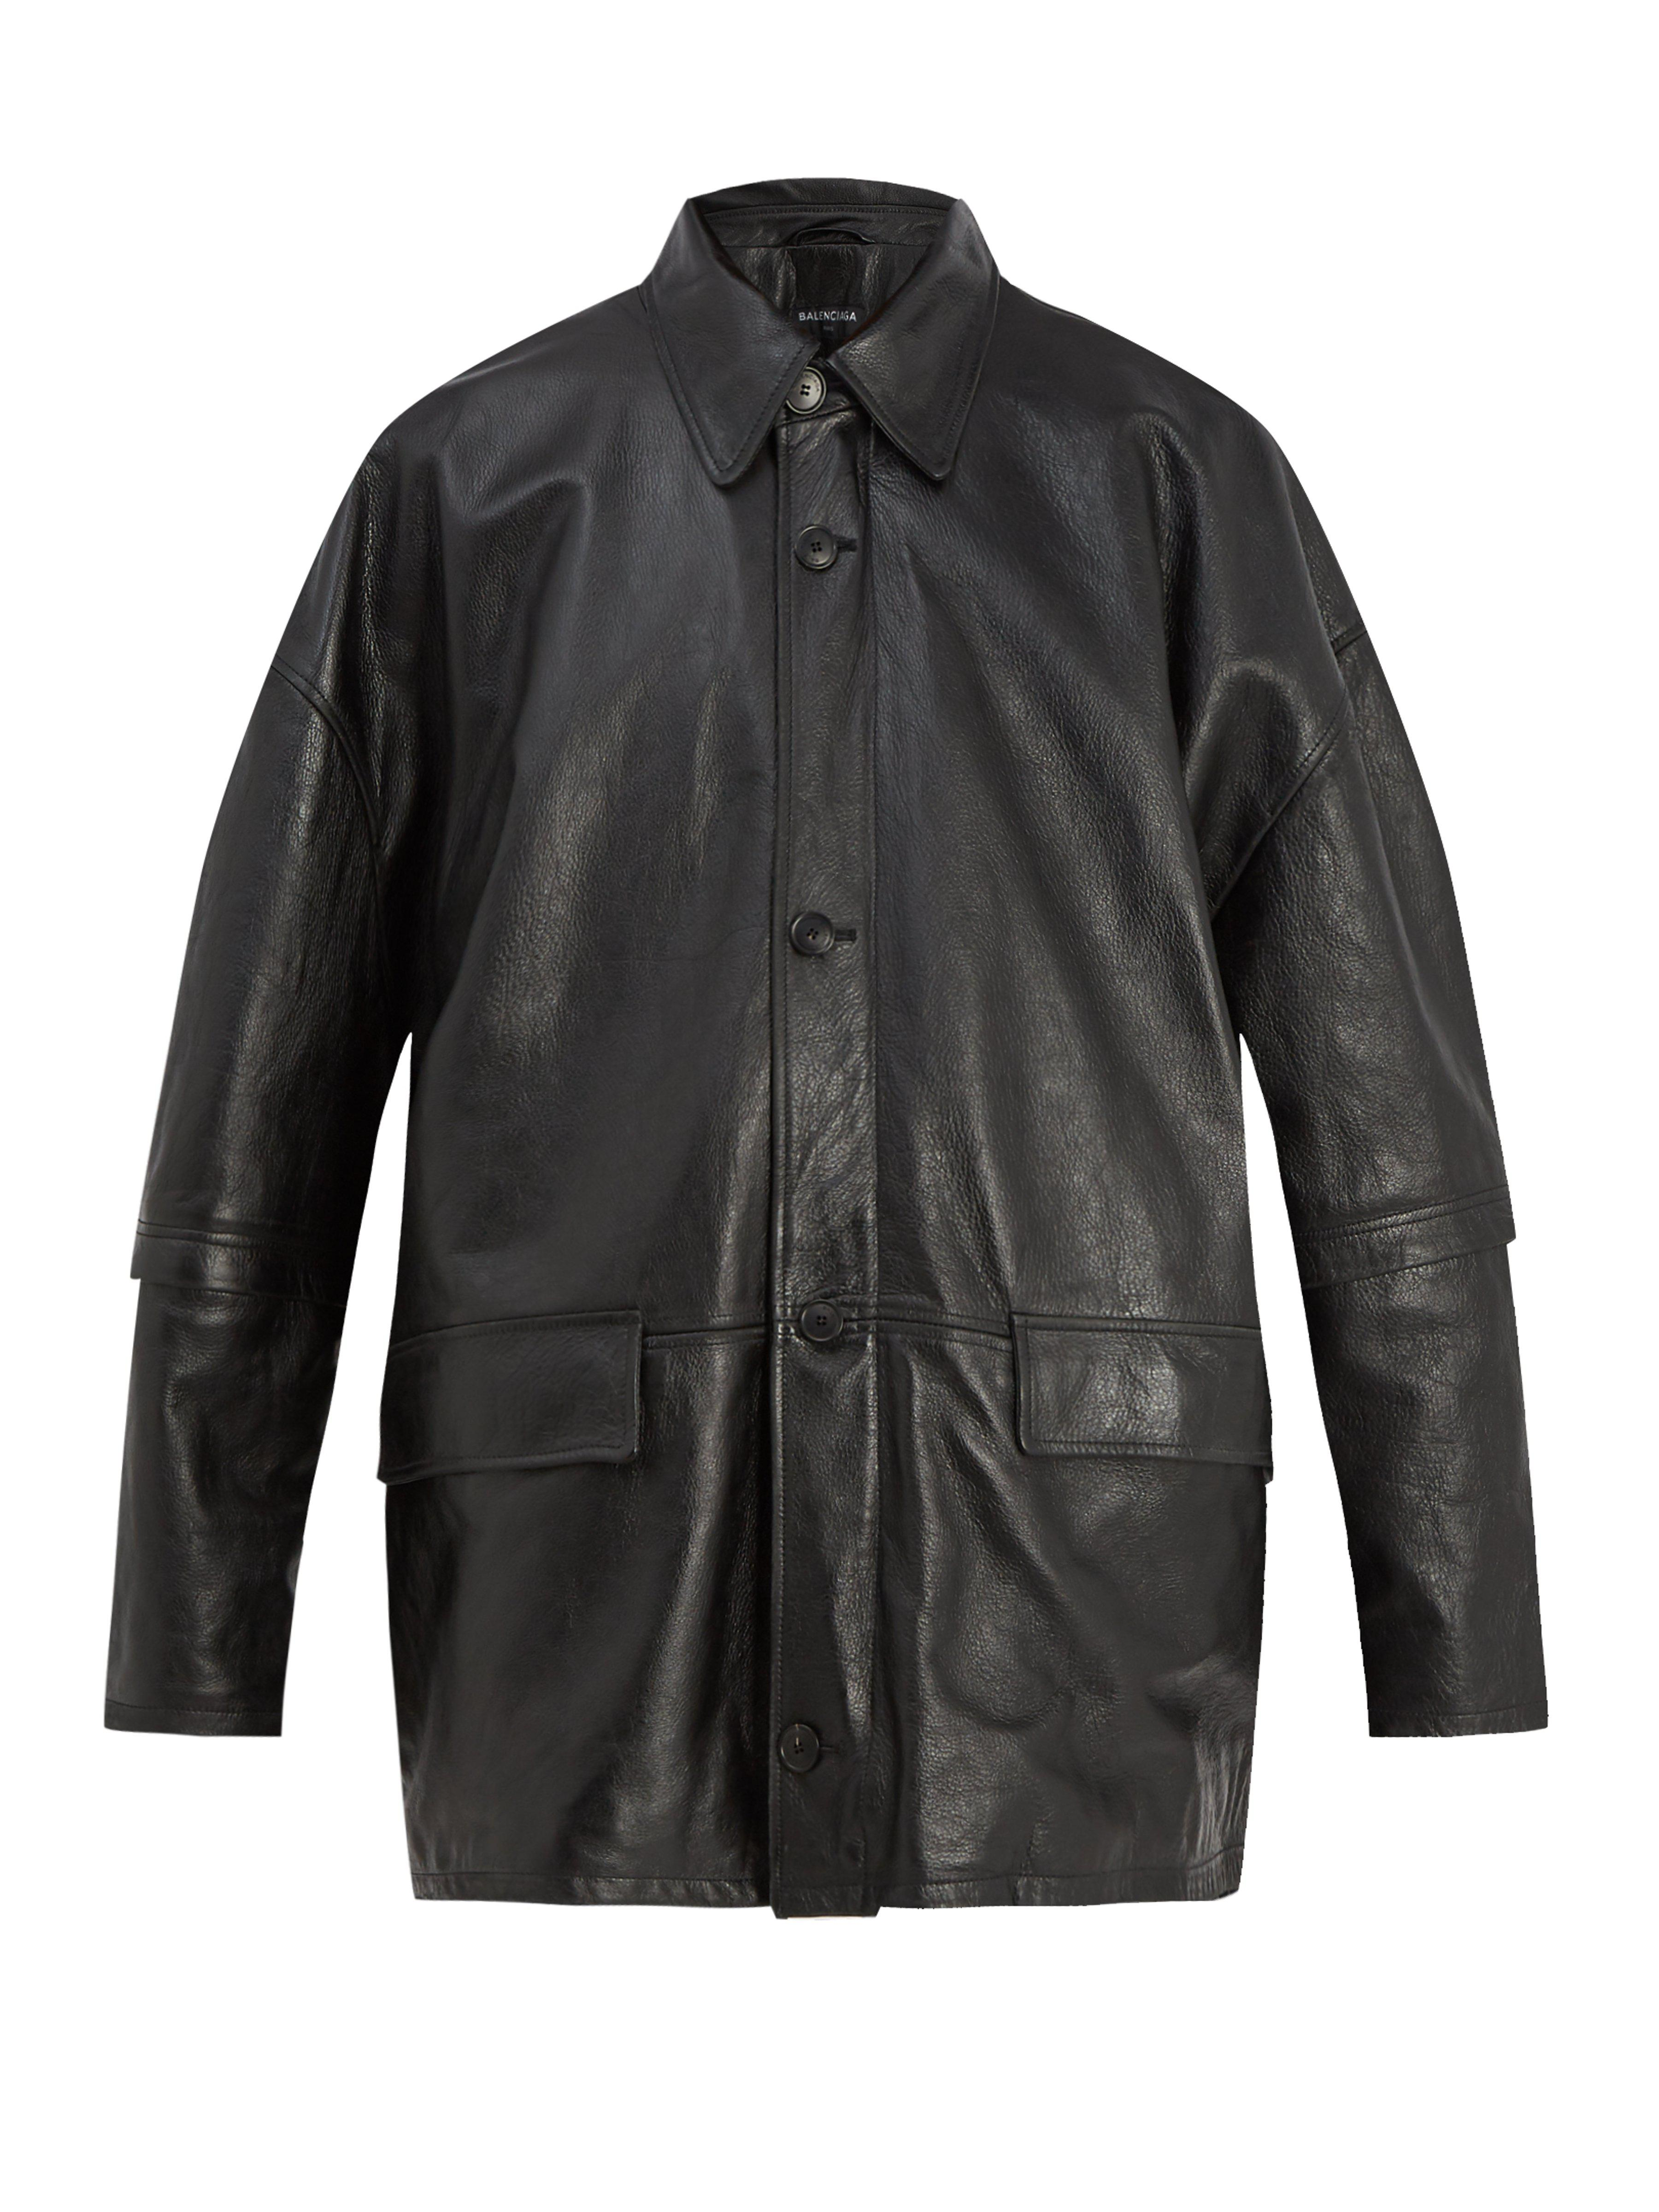 db0b8042a0977 Balenciaga - Black Oversized Leather Jacket for Men - Lyst. View fullscreen